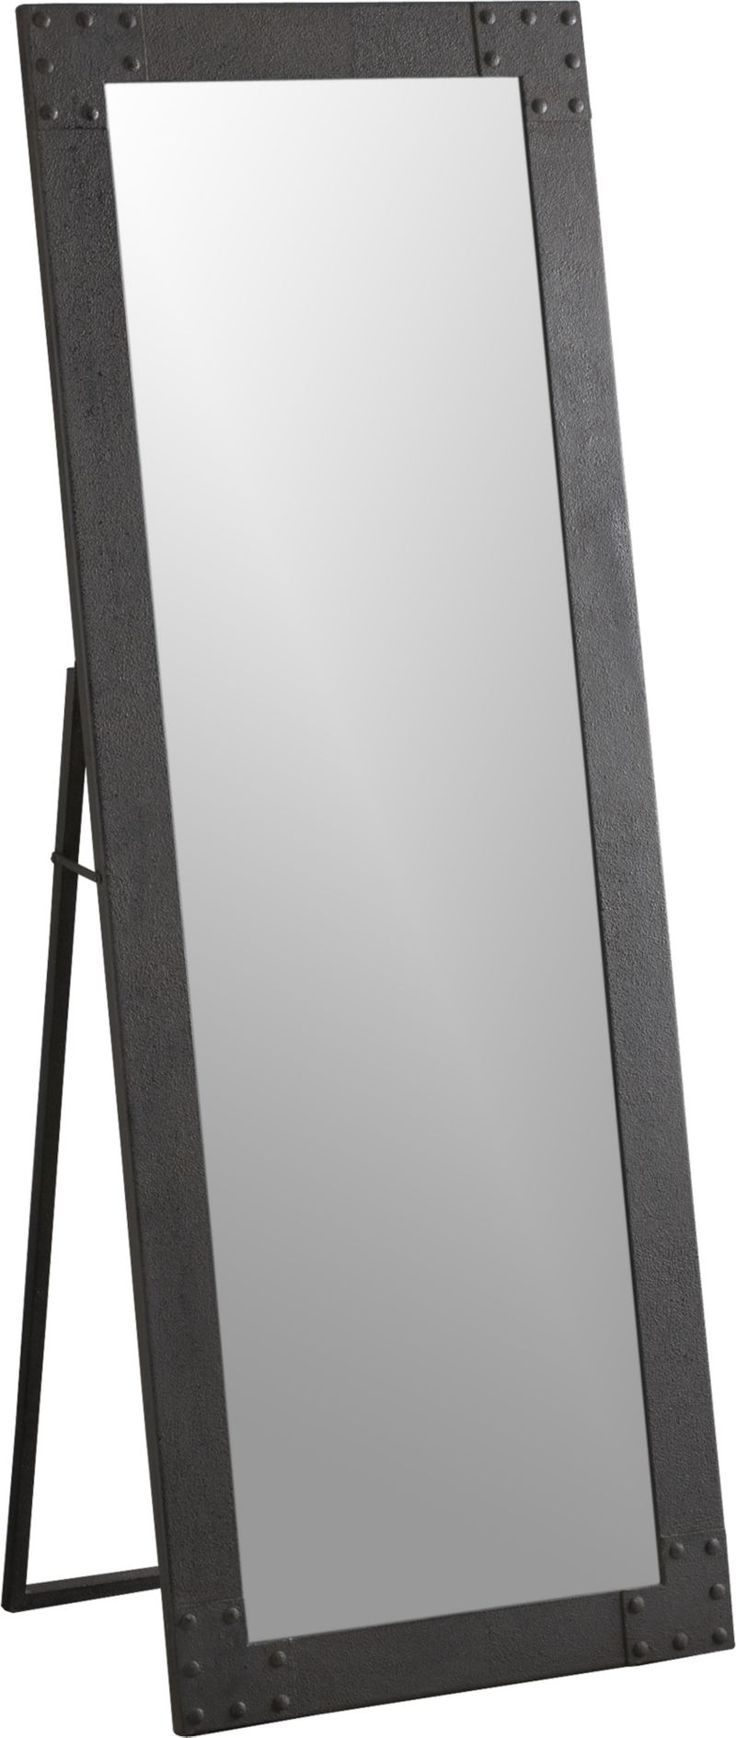 Long Mirror For Bedroom 17 Best Ideas About Minimalist Full Length Mirrors On Pinterest